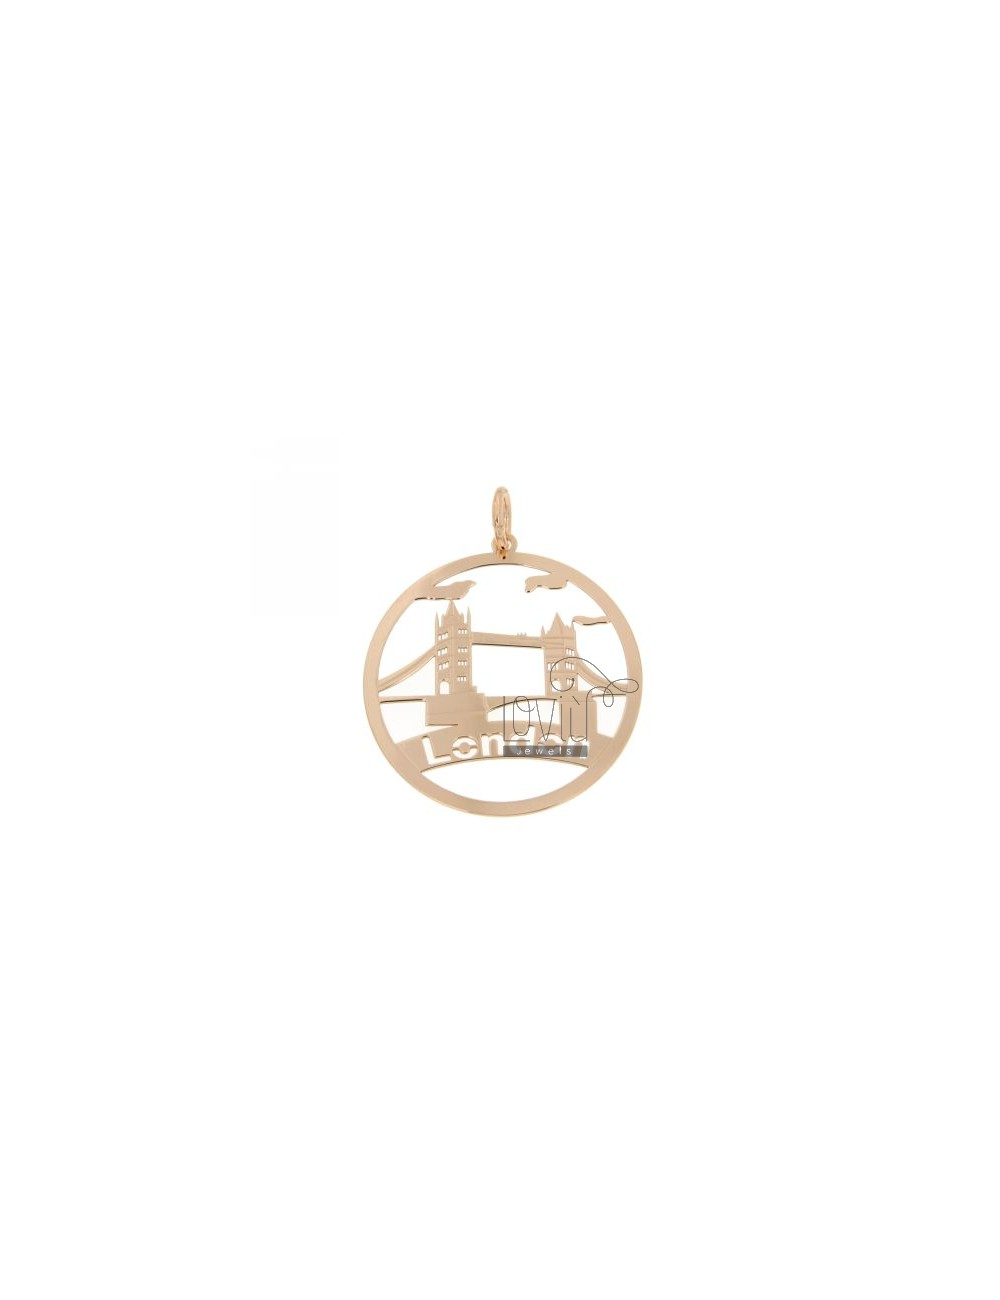 CHARM ROUND LASER CUTTING 40 MM IN LONDON AG ROSE GOLD PLATED TIT 925 ‰